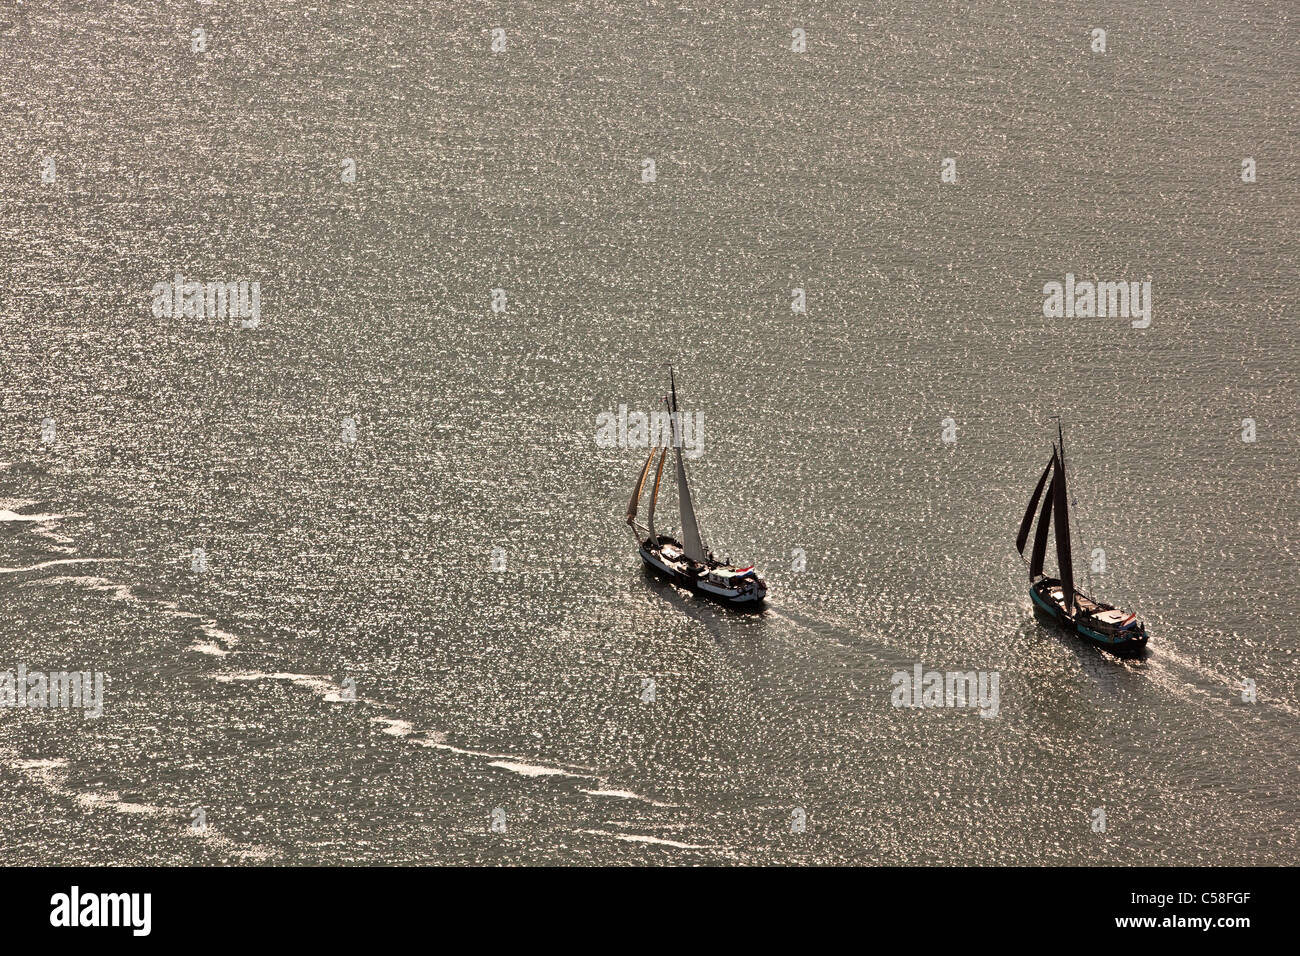 Holland, Island Terschelling, Wadden Sea. Unesco World Heritage Site. Aerial. Traditional cargo sailing ships, tourist - Stock Image